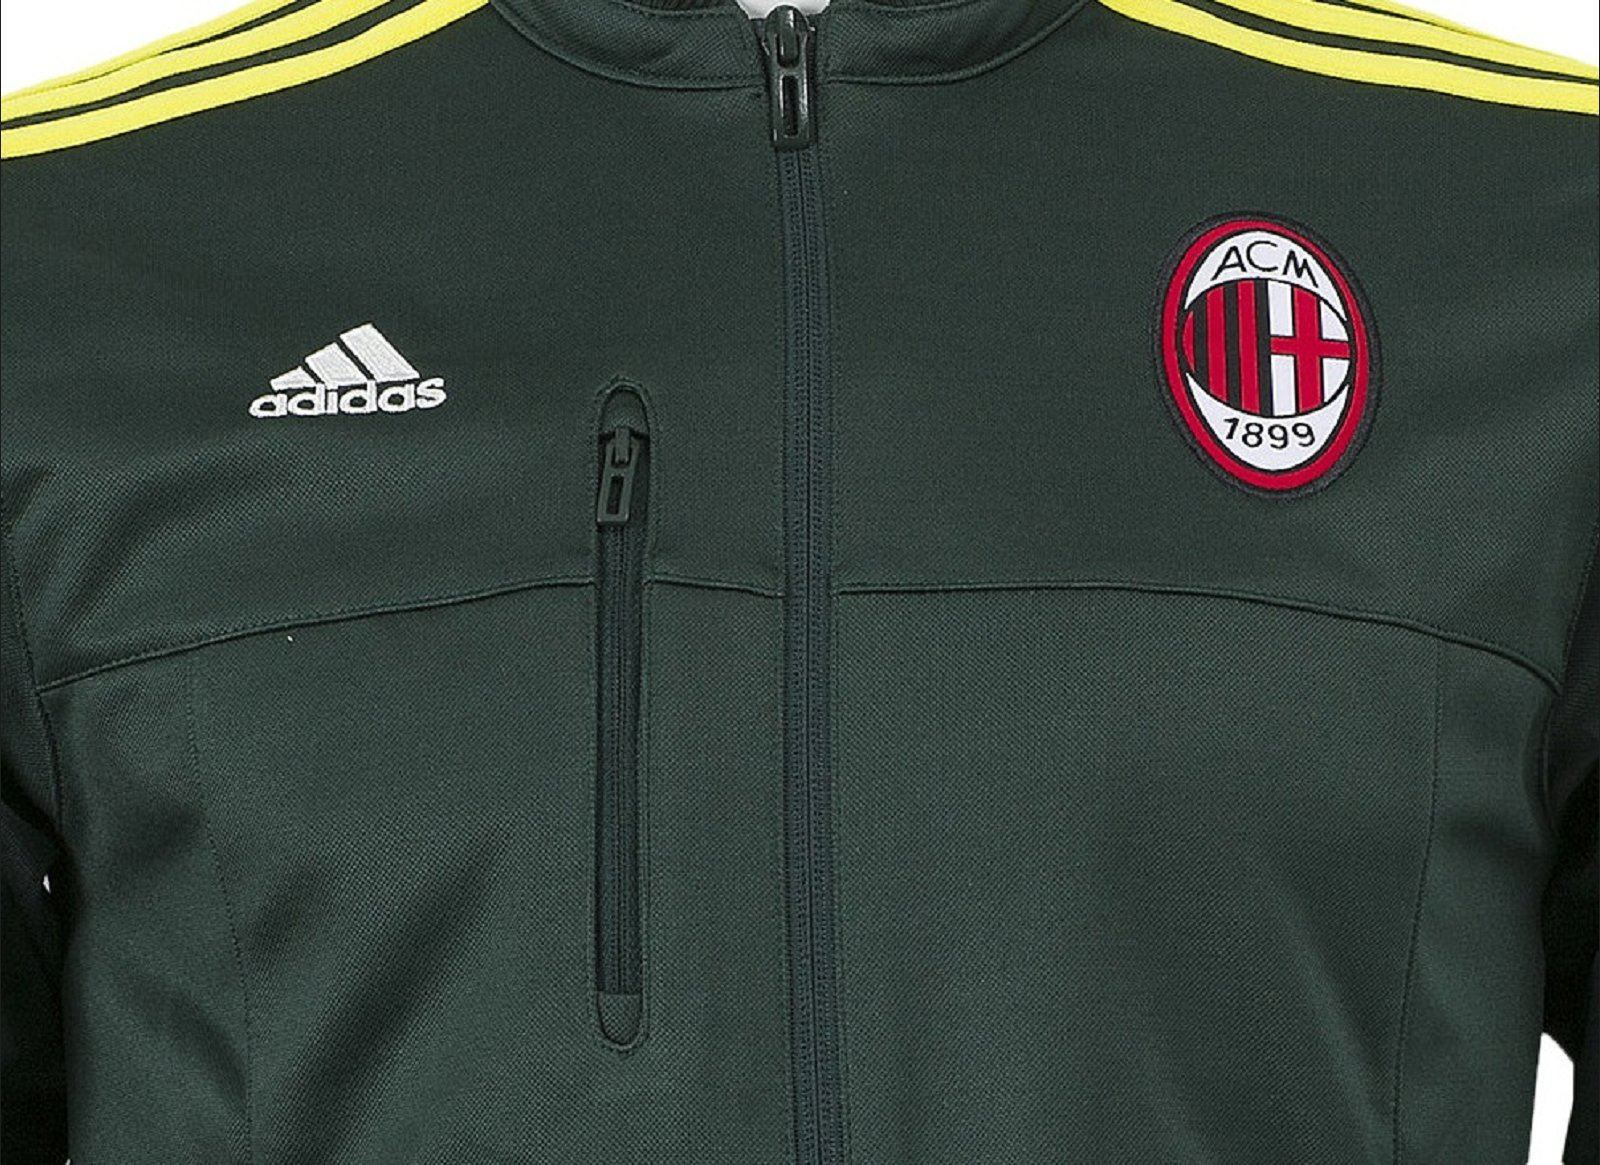 Details about adidas AC Milan Anthem Jacket GreenYellow Mens Football Soccer Tracksuit Top